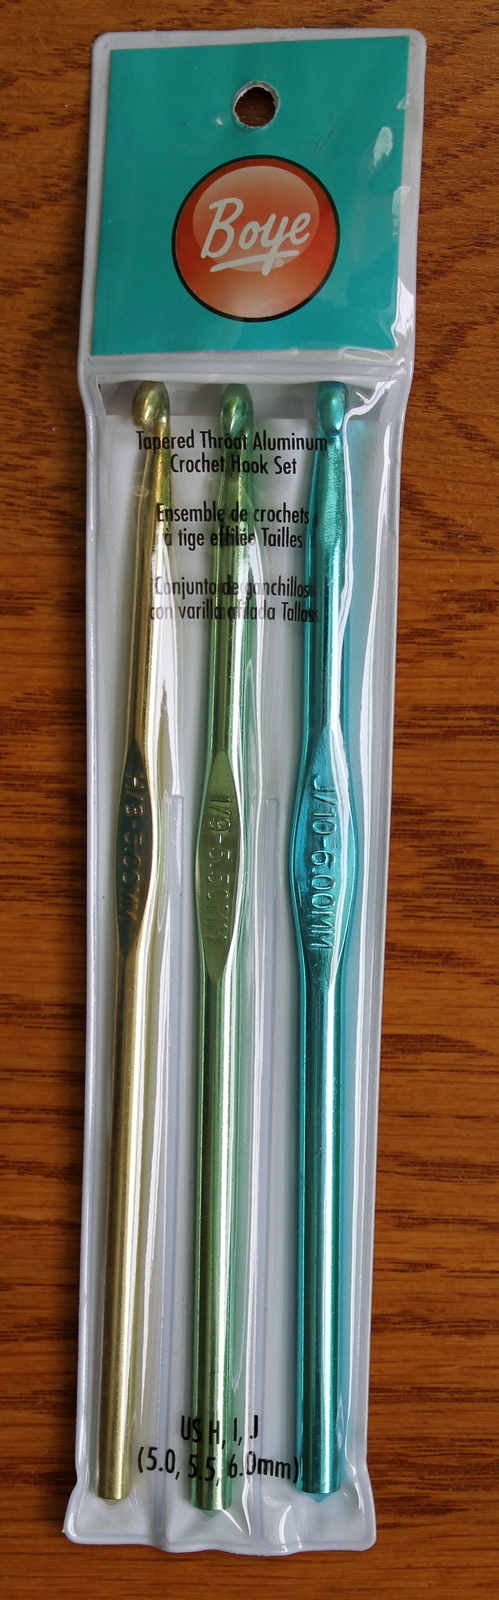 Boye Aluminum Crochet Hooks Set, Sizes H, I and J